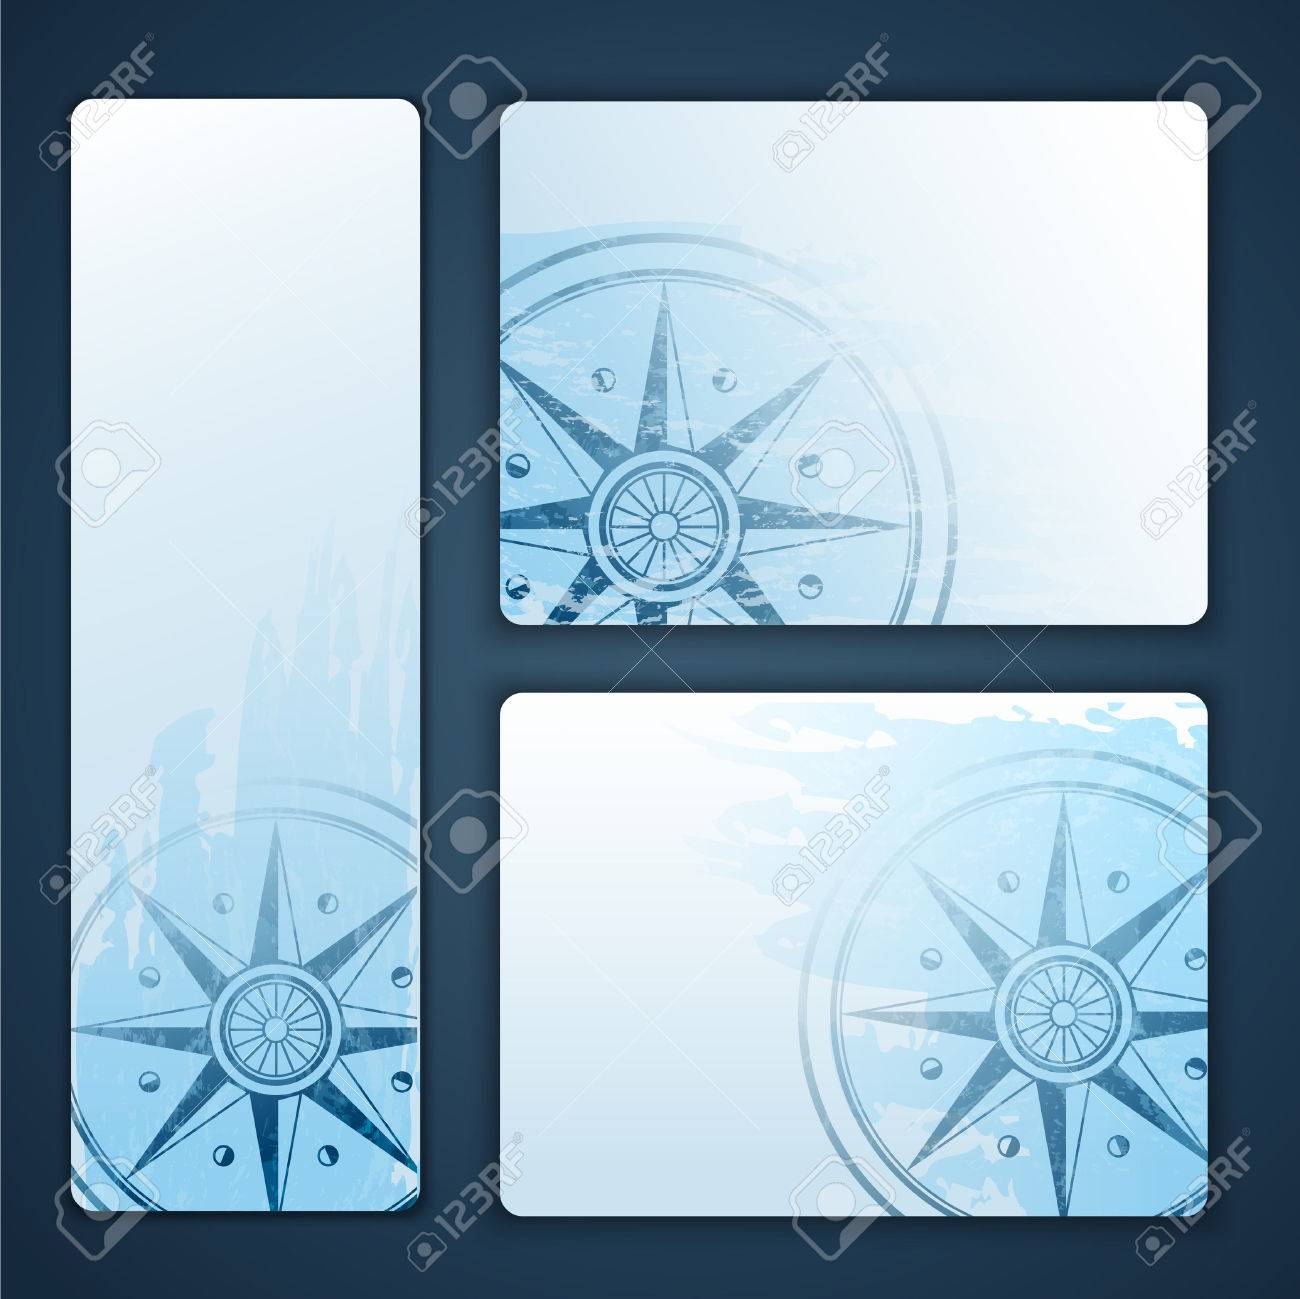 Nautical banners with wind rose compass - 28437016